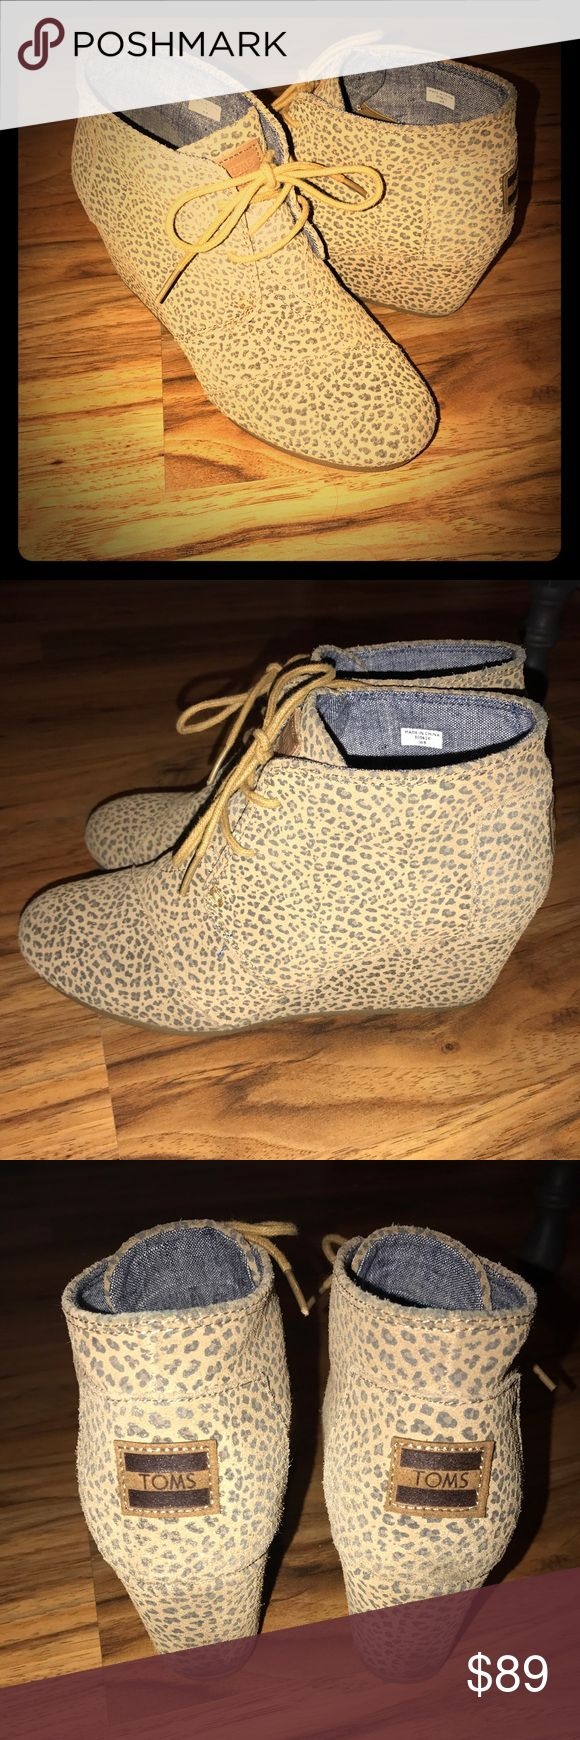 Leopard TOMS *hard to find* EUC size 8 Great condition leopard print tom sand wedge size 8 TOMS Shoes Ankle Boots & Booties